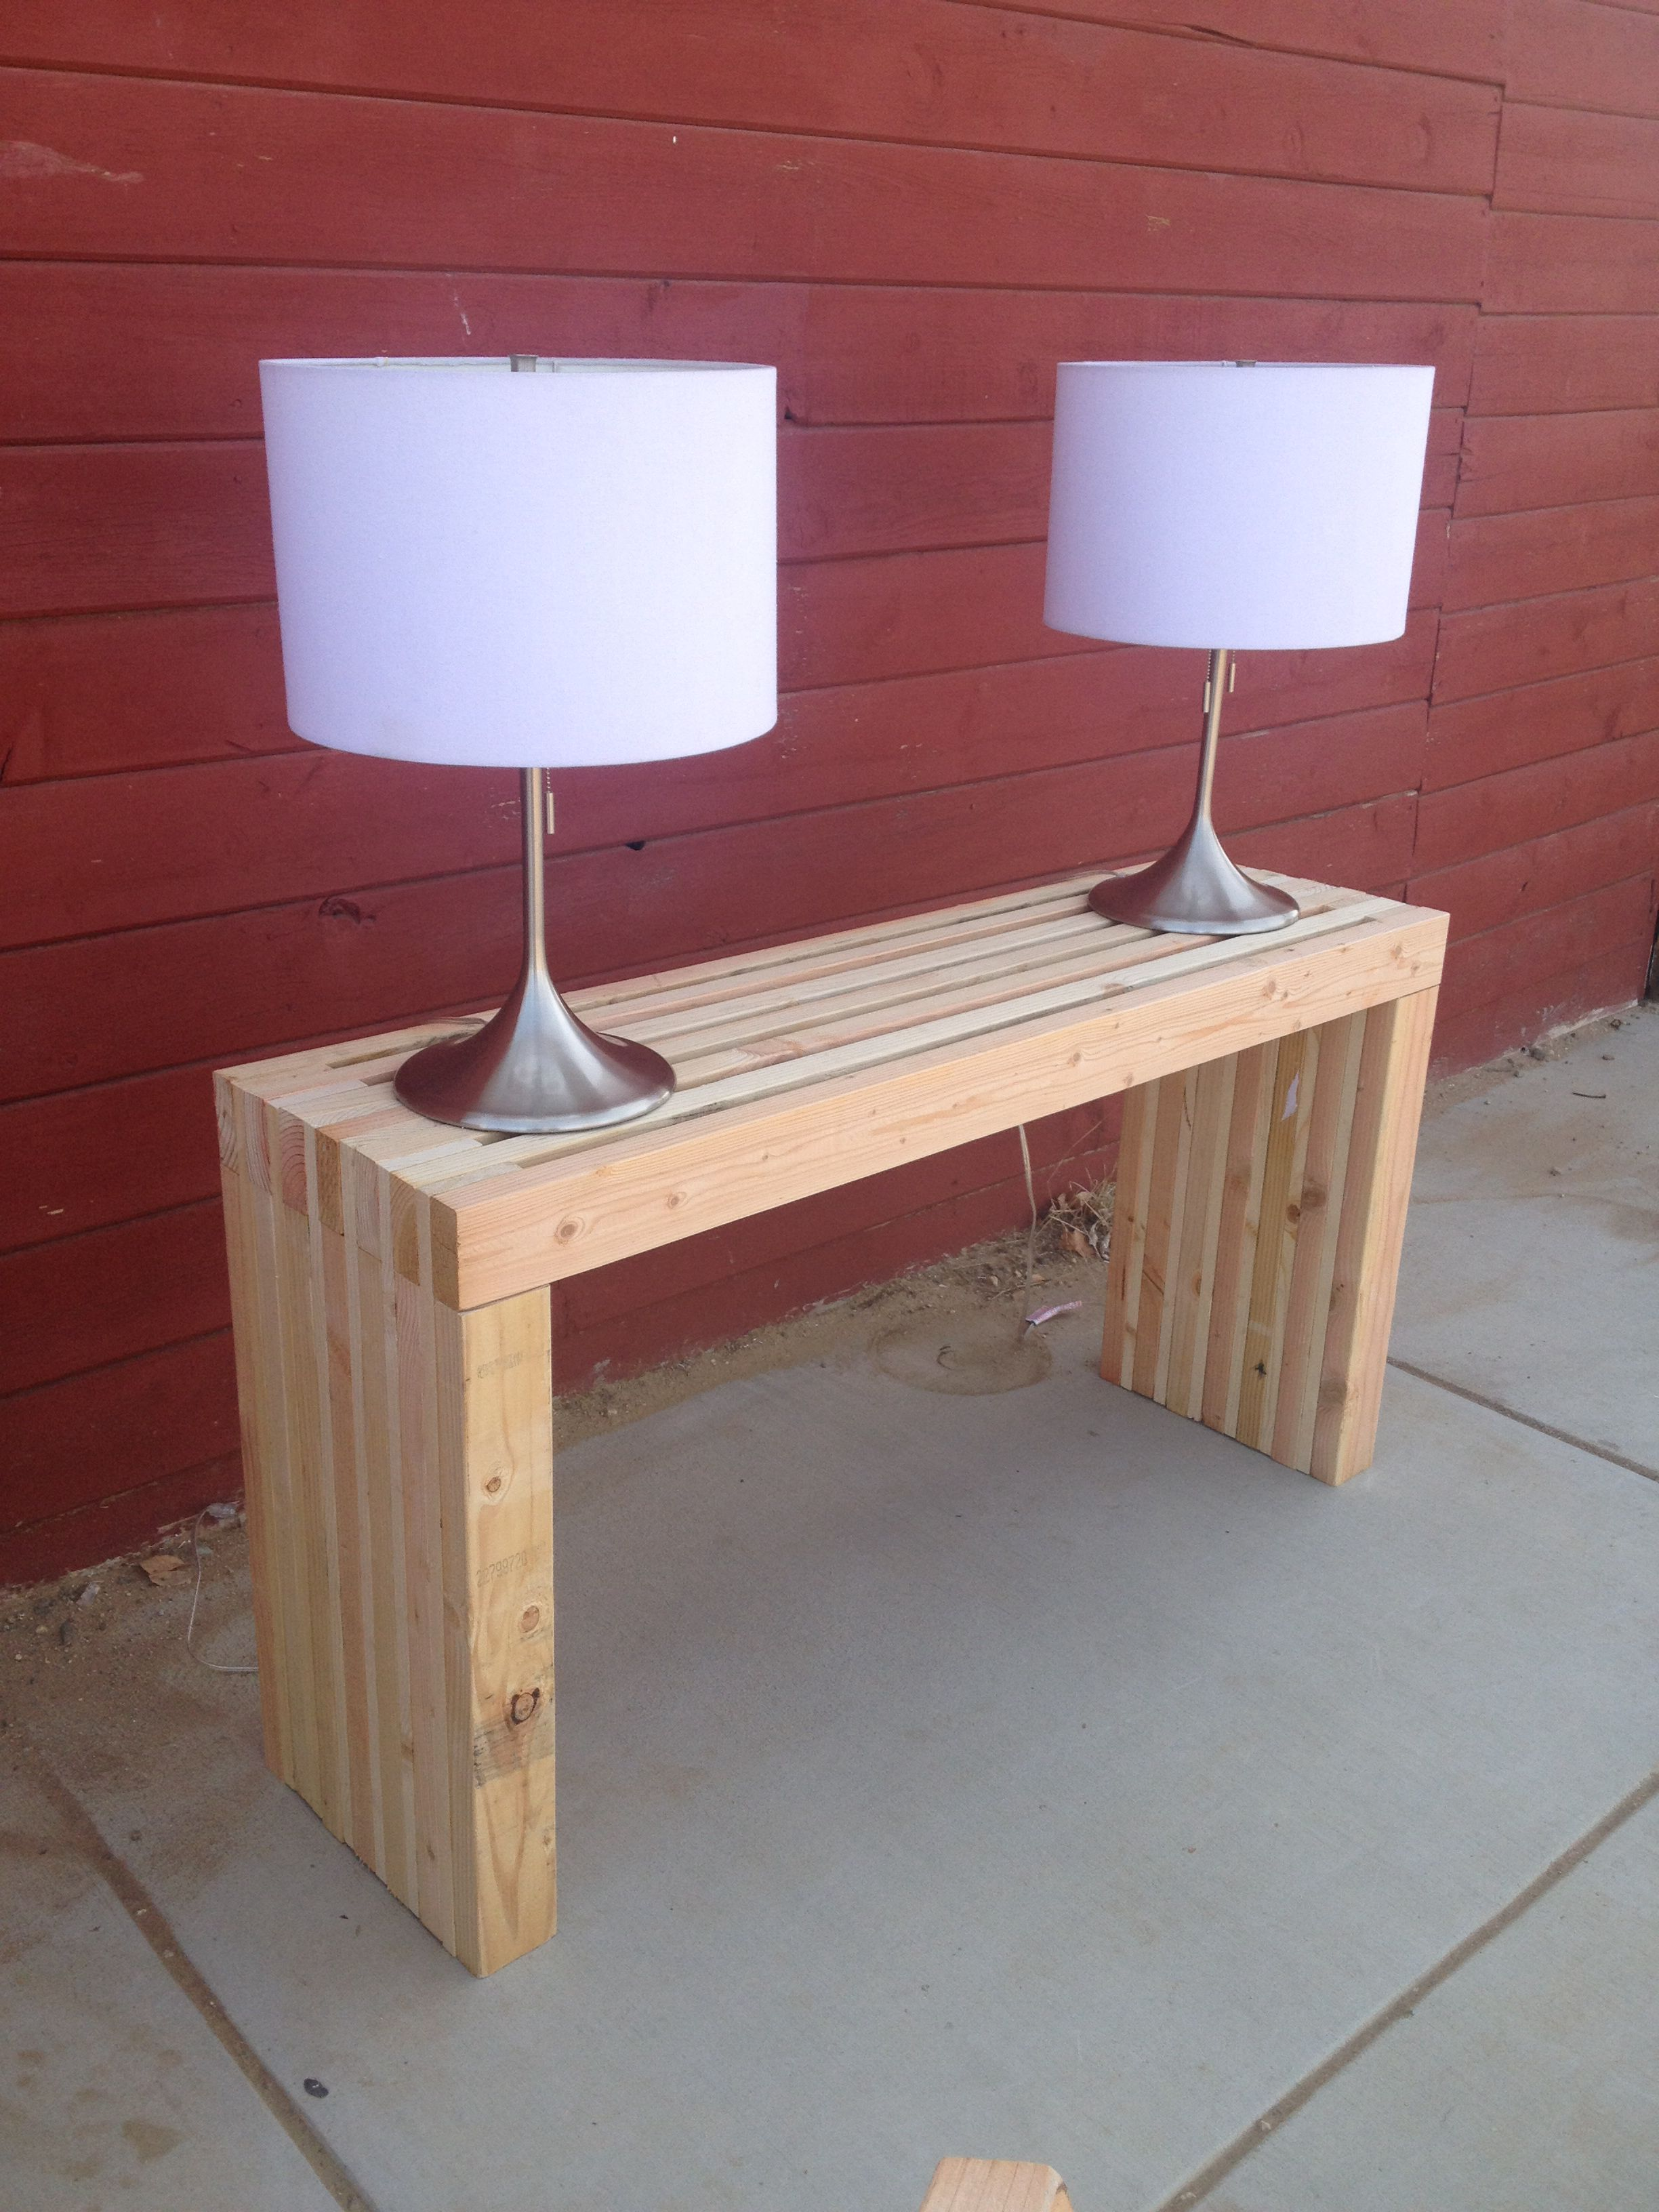 sofa tables pinterest freedom benson reviews completed 2x4 table originals by me